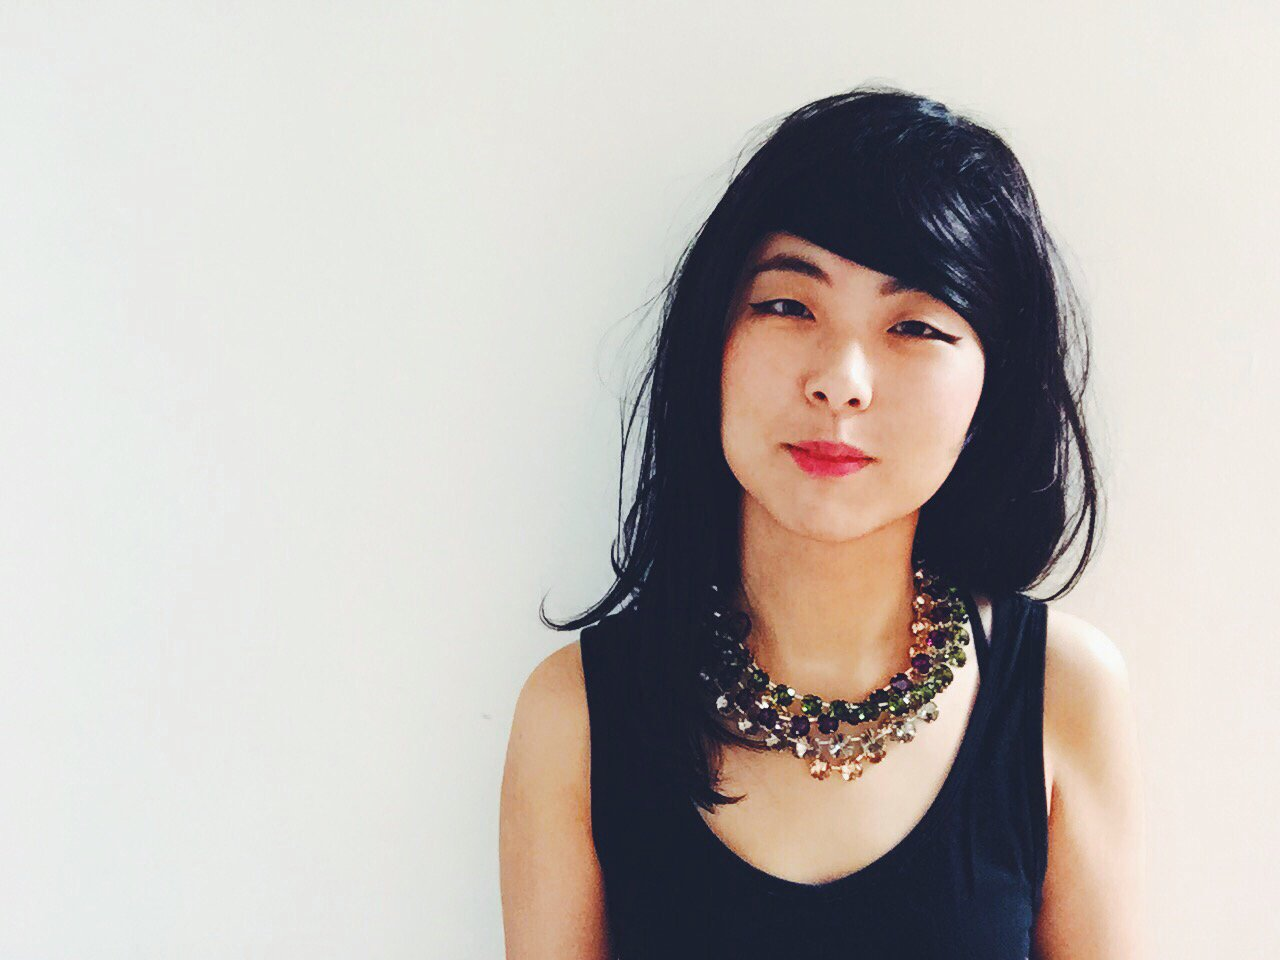 EOD blog, In Her Shoes: JY Lee, a corporate lawyer and the founder of JYJewels